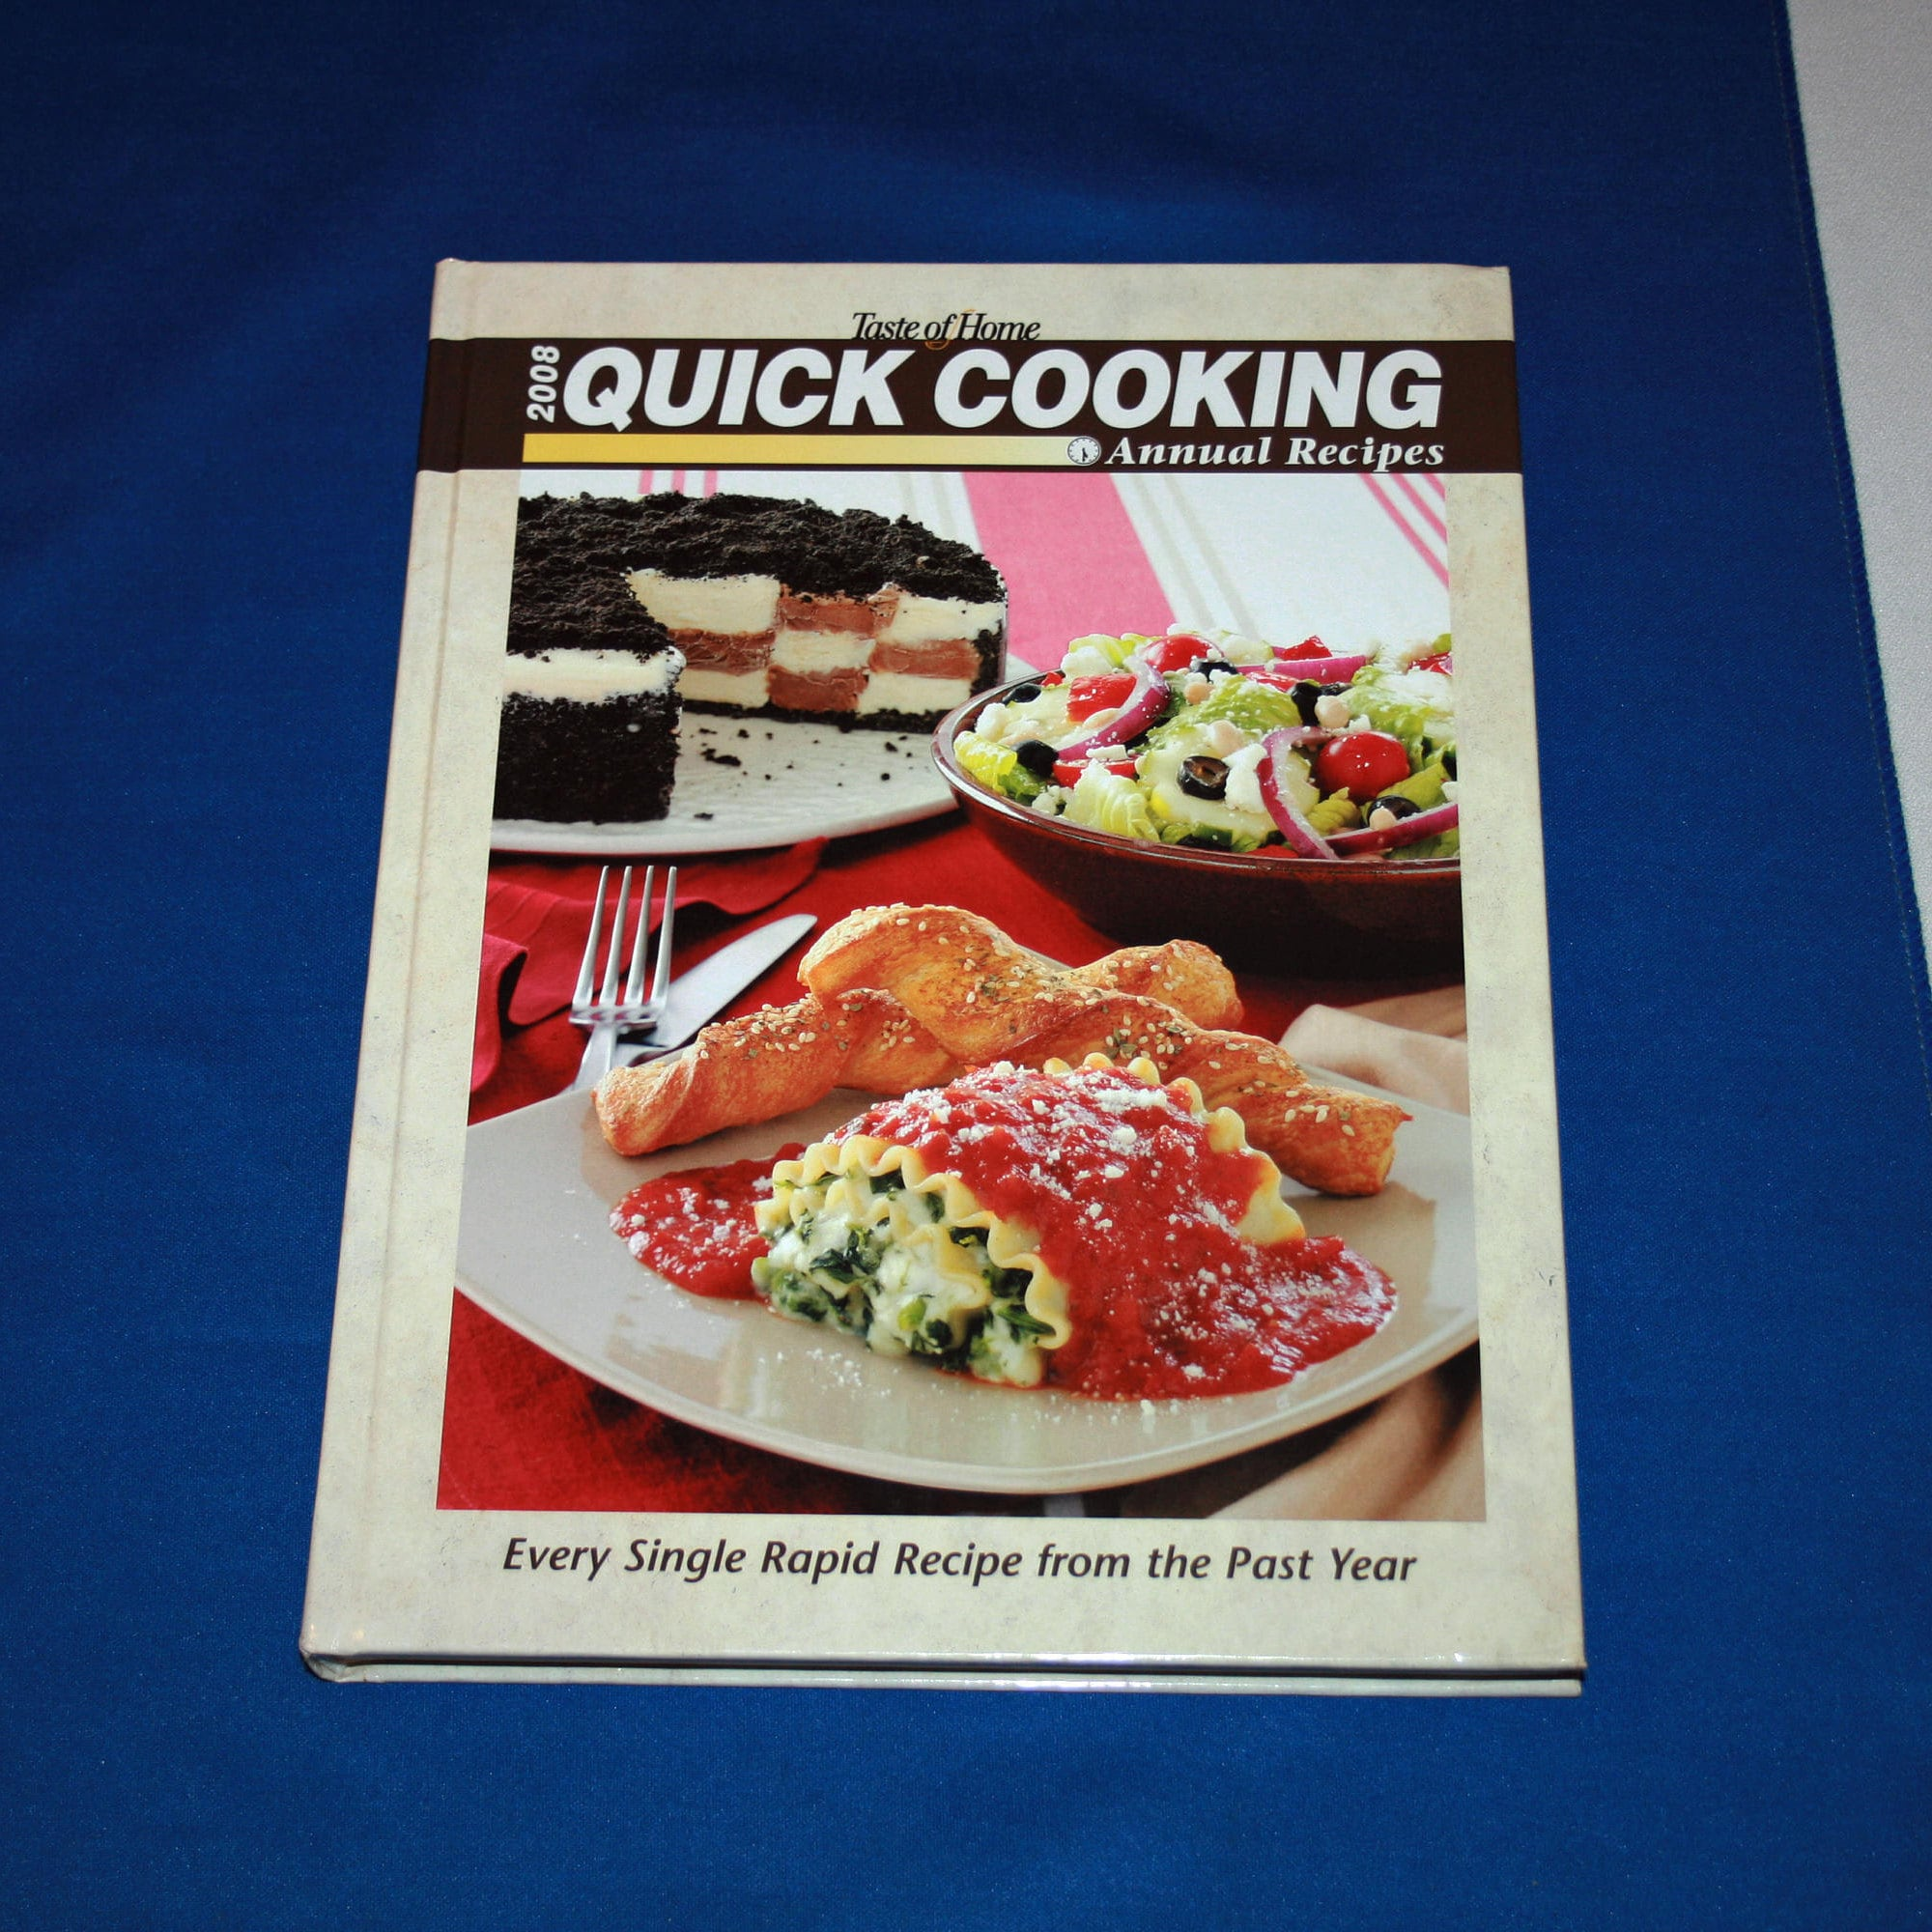 Taste of home 2008 quick cooking annual recipes cookbook hardcover taste of home 2008 quick cooking annual recipes cookbook hardcover recipe dessert meal planning contest winning dishes cook book desserts forumfinder Gallery